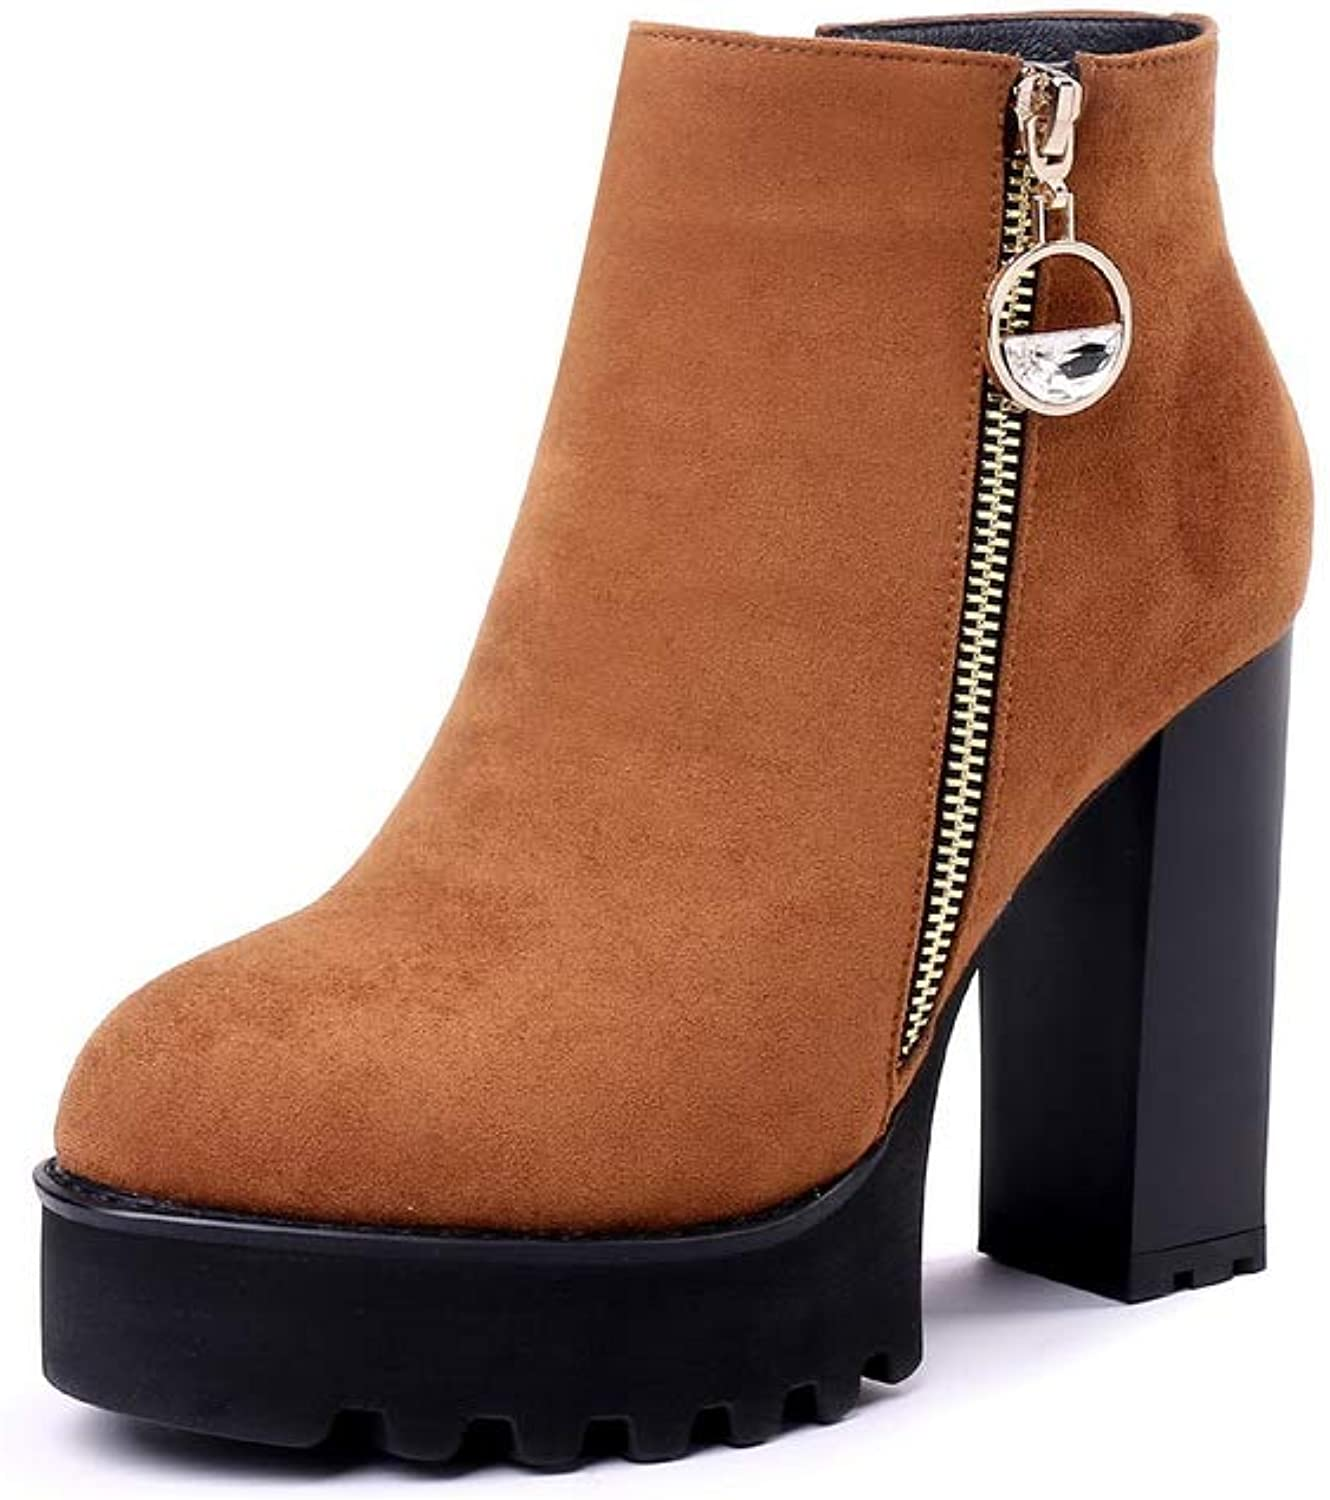 AN Womens Square Heels Chunky Heels Platform Imitated Suede Boots DKU02672